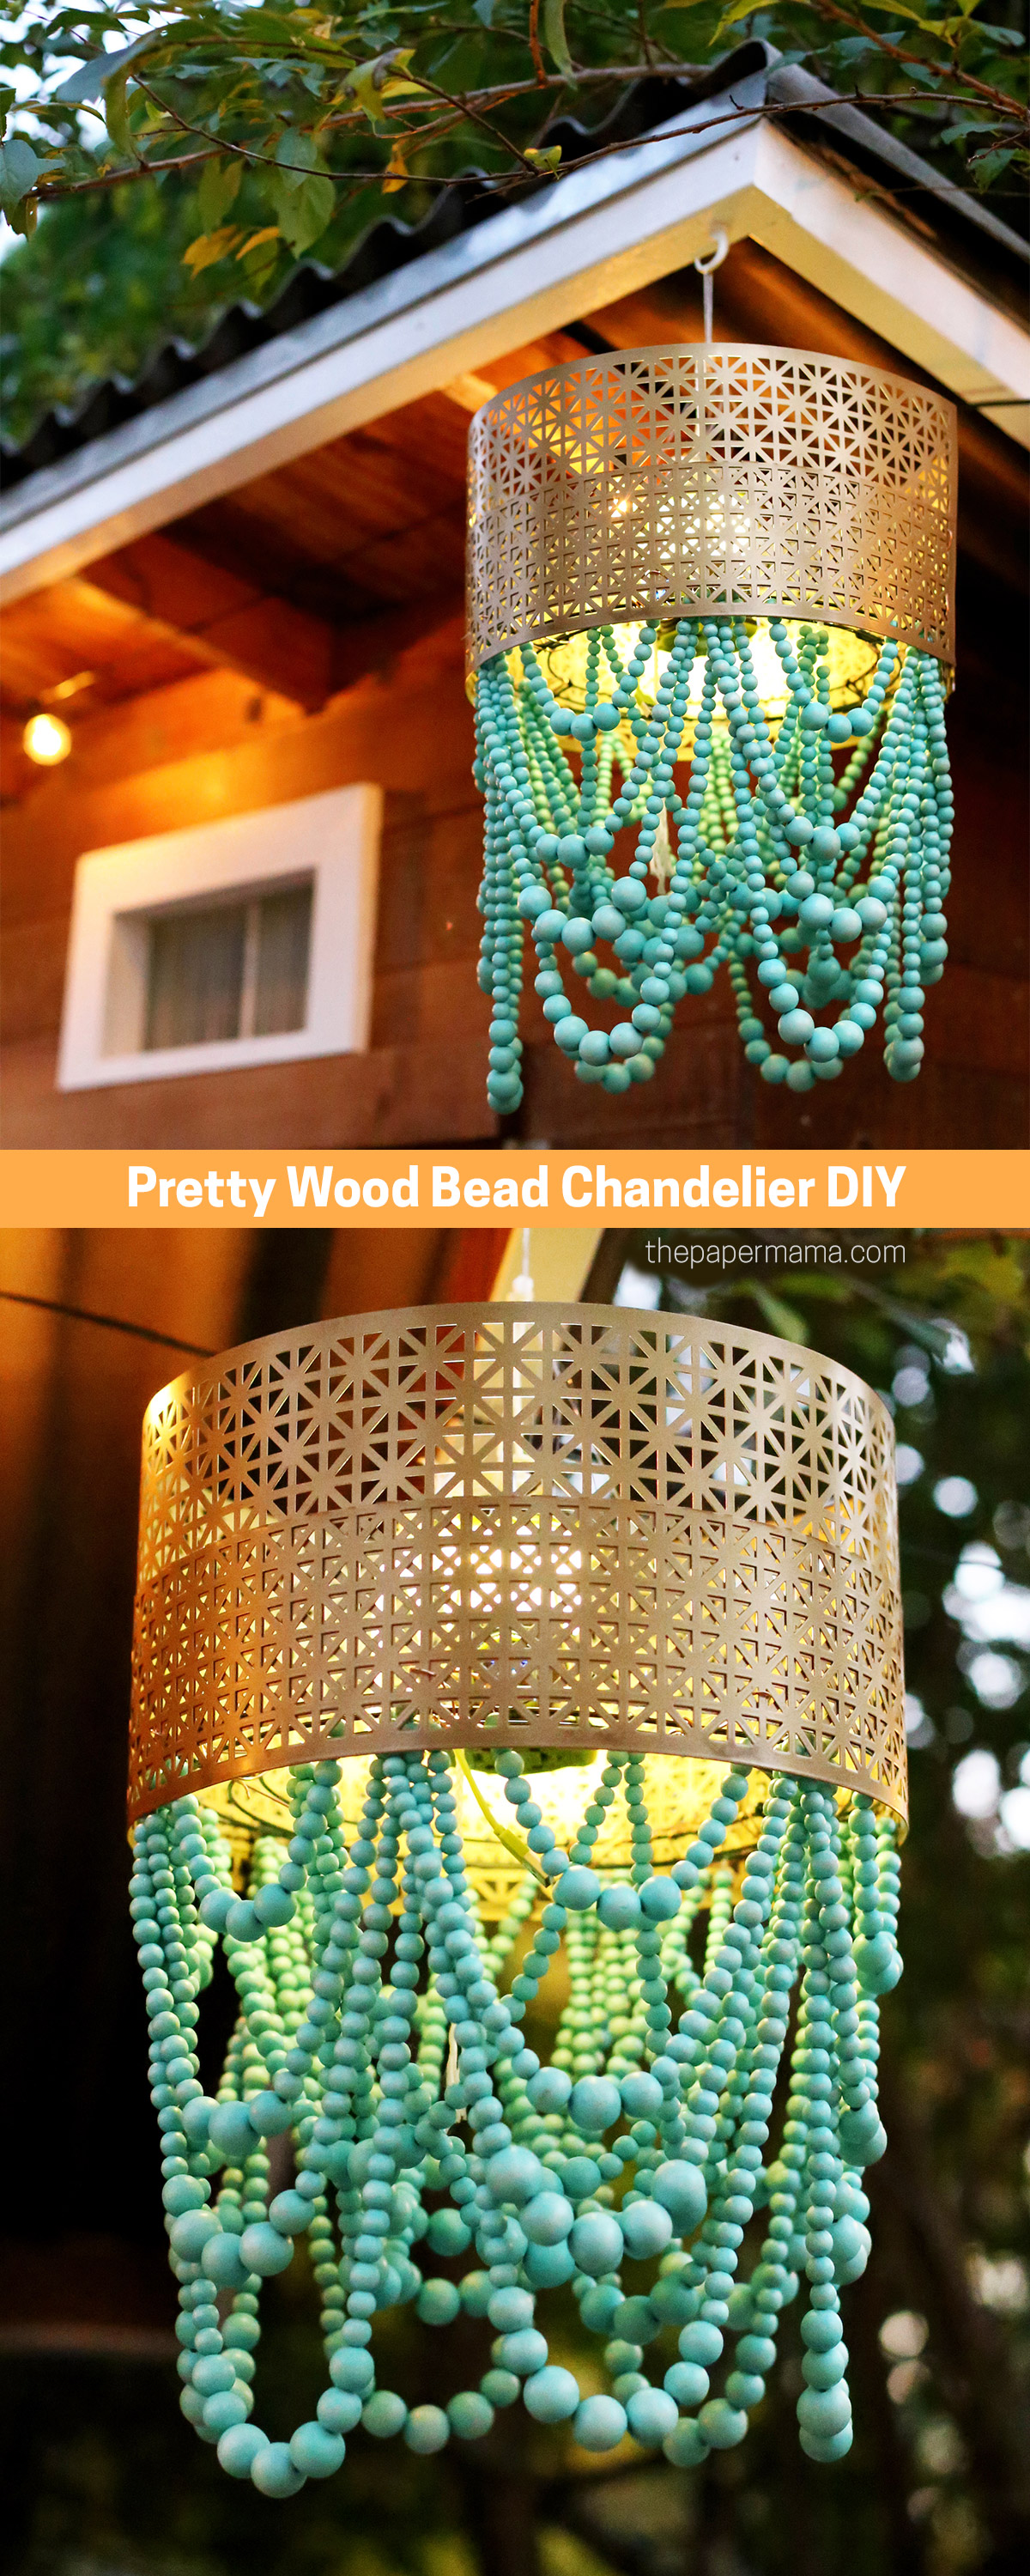 Pretty Wood Bead Chandelier DIY